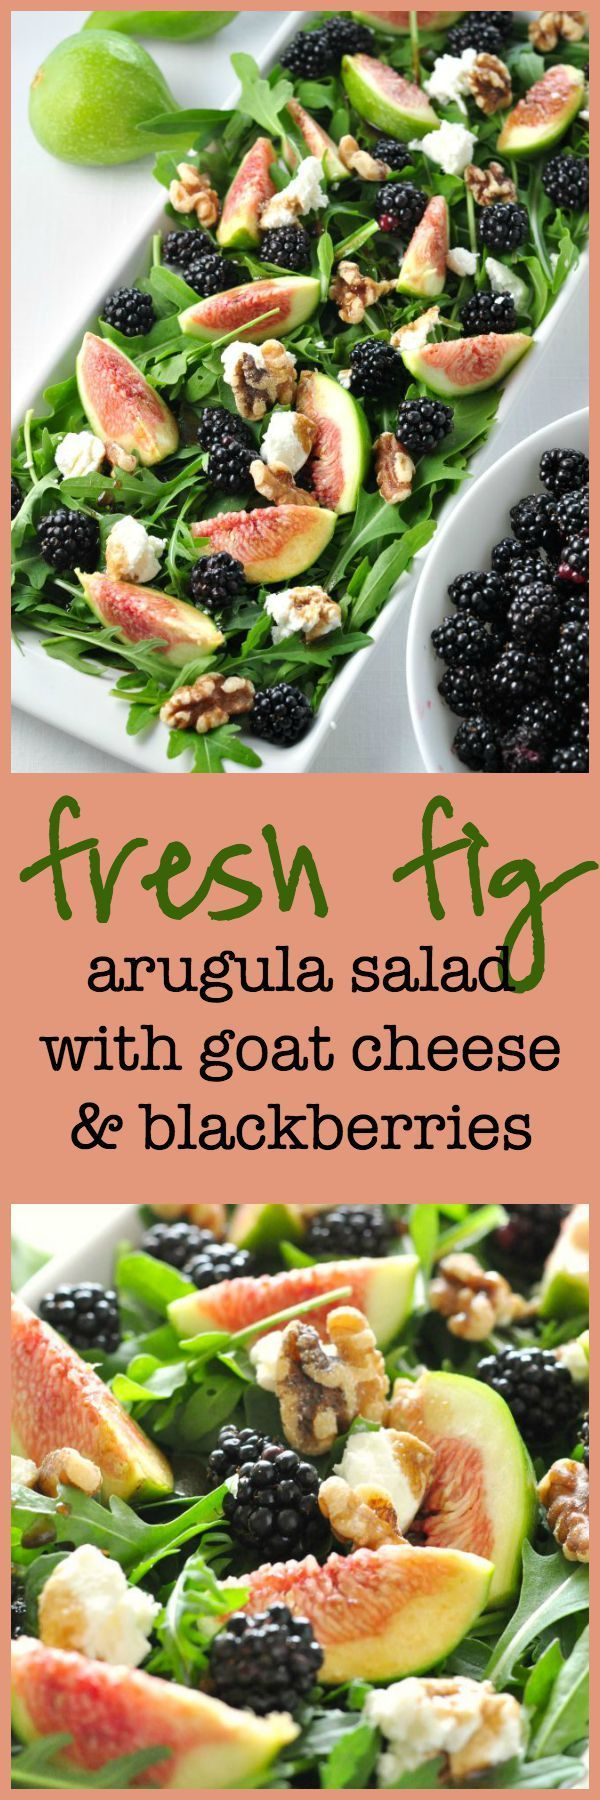 Savour the flavours of the season with this fresh fig arugula salad with blackberries, goat cheese and walnuts. #figs #blackberries #goatcheese #walnuts #salad